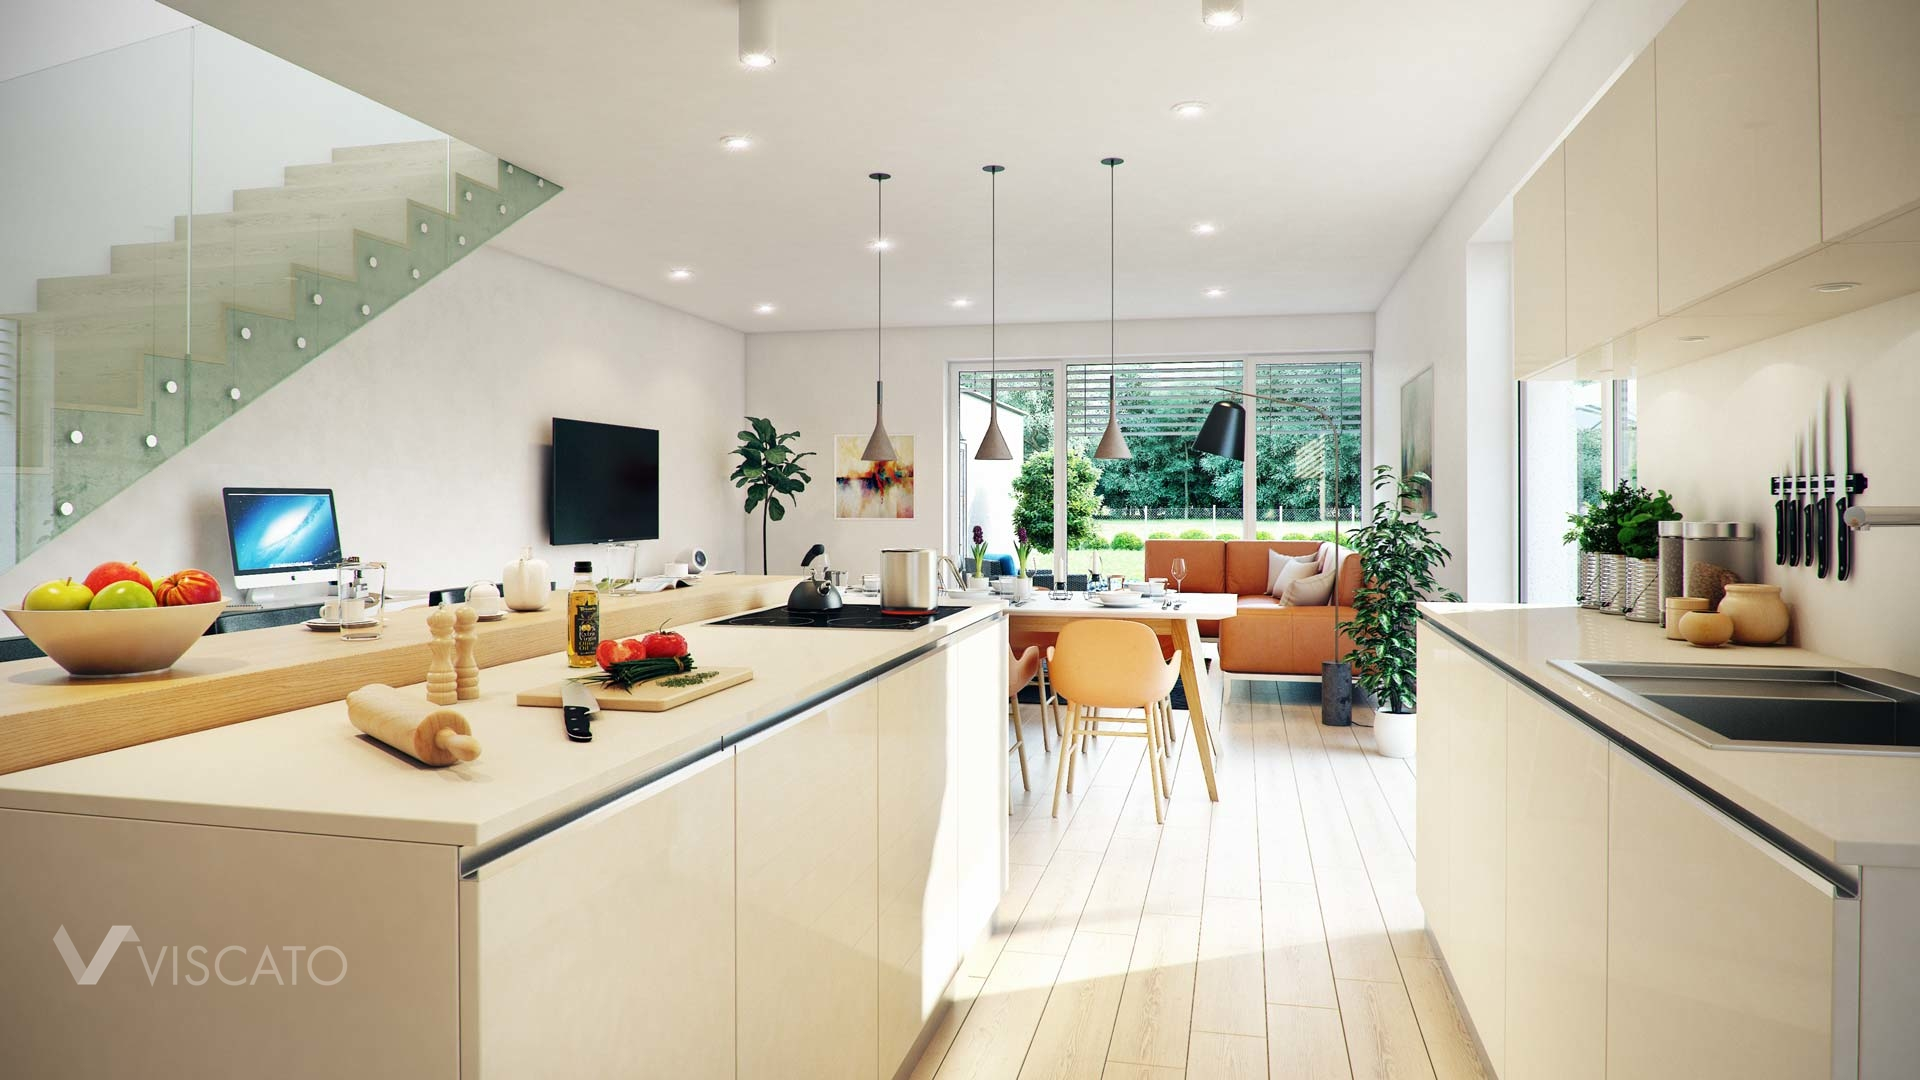 Linz twin house interior visualization kitchen view on living room